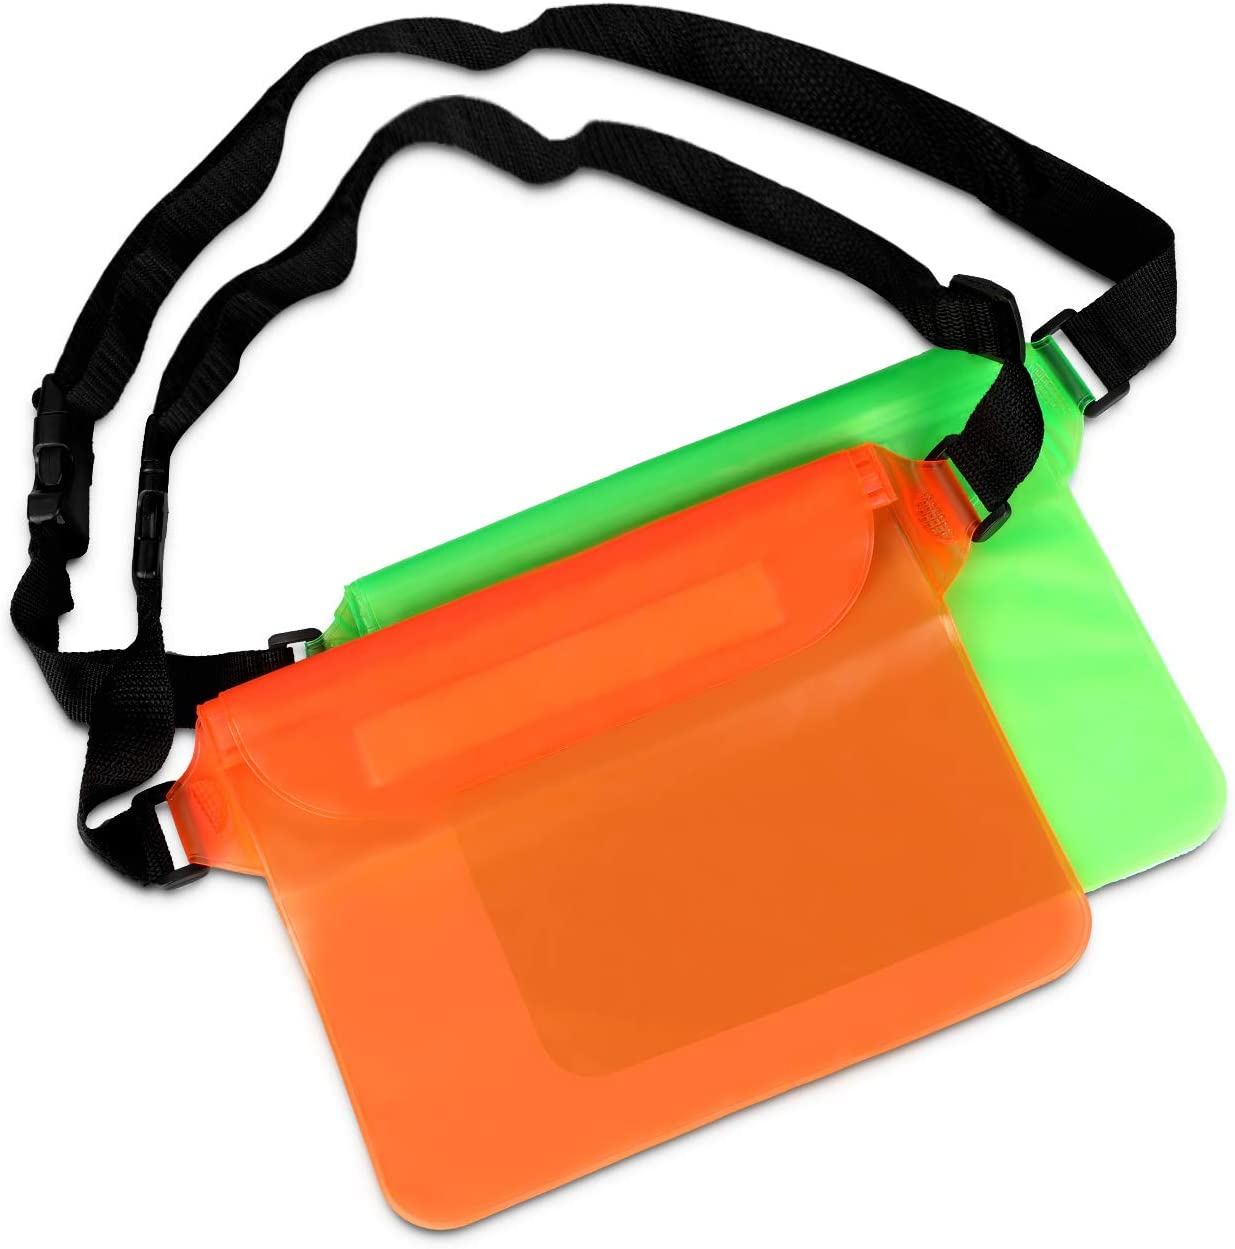 BFVV Waterproof Pouch with Waist Strap 2 Pack Keep Your Phone and Valuables Safe and Dry Waterproof Fanny Pack for Boating Swimming Snorkeling Fishing Sailing Beach Water Parks